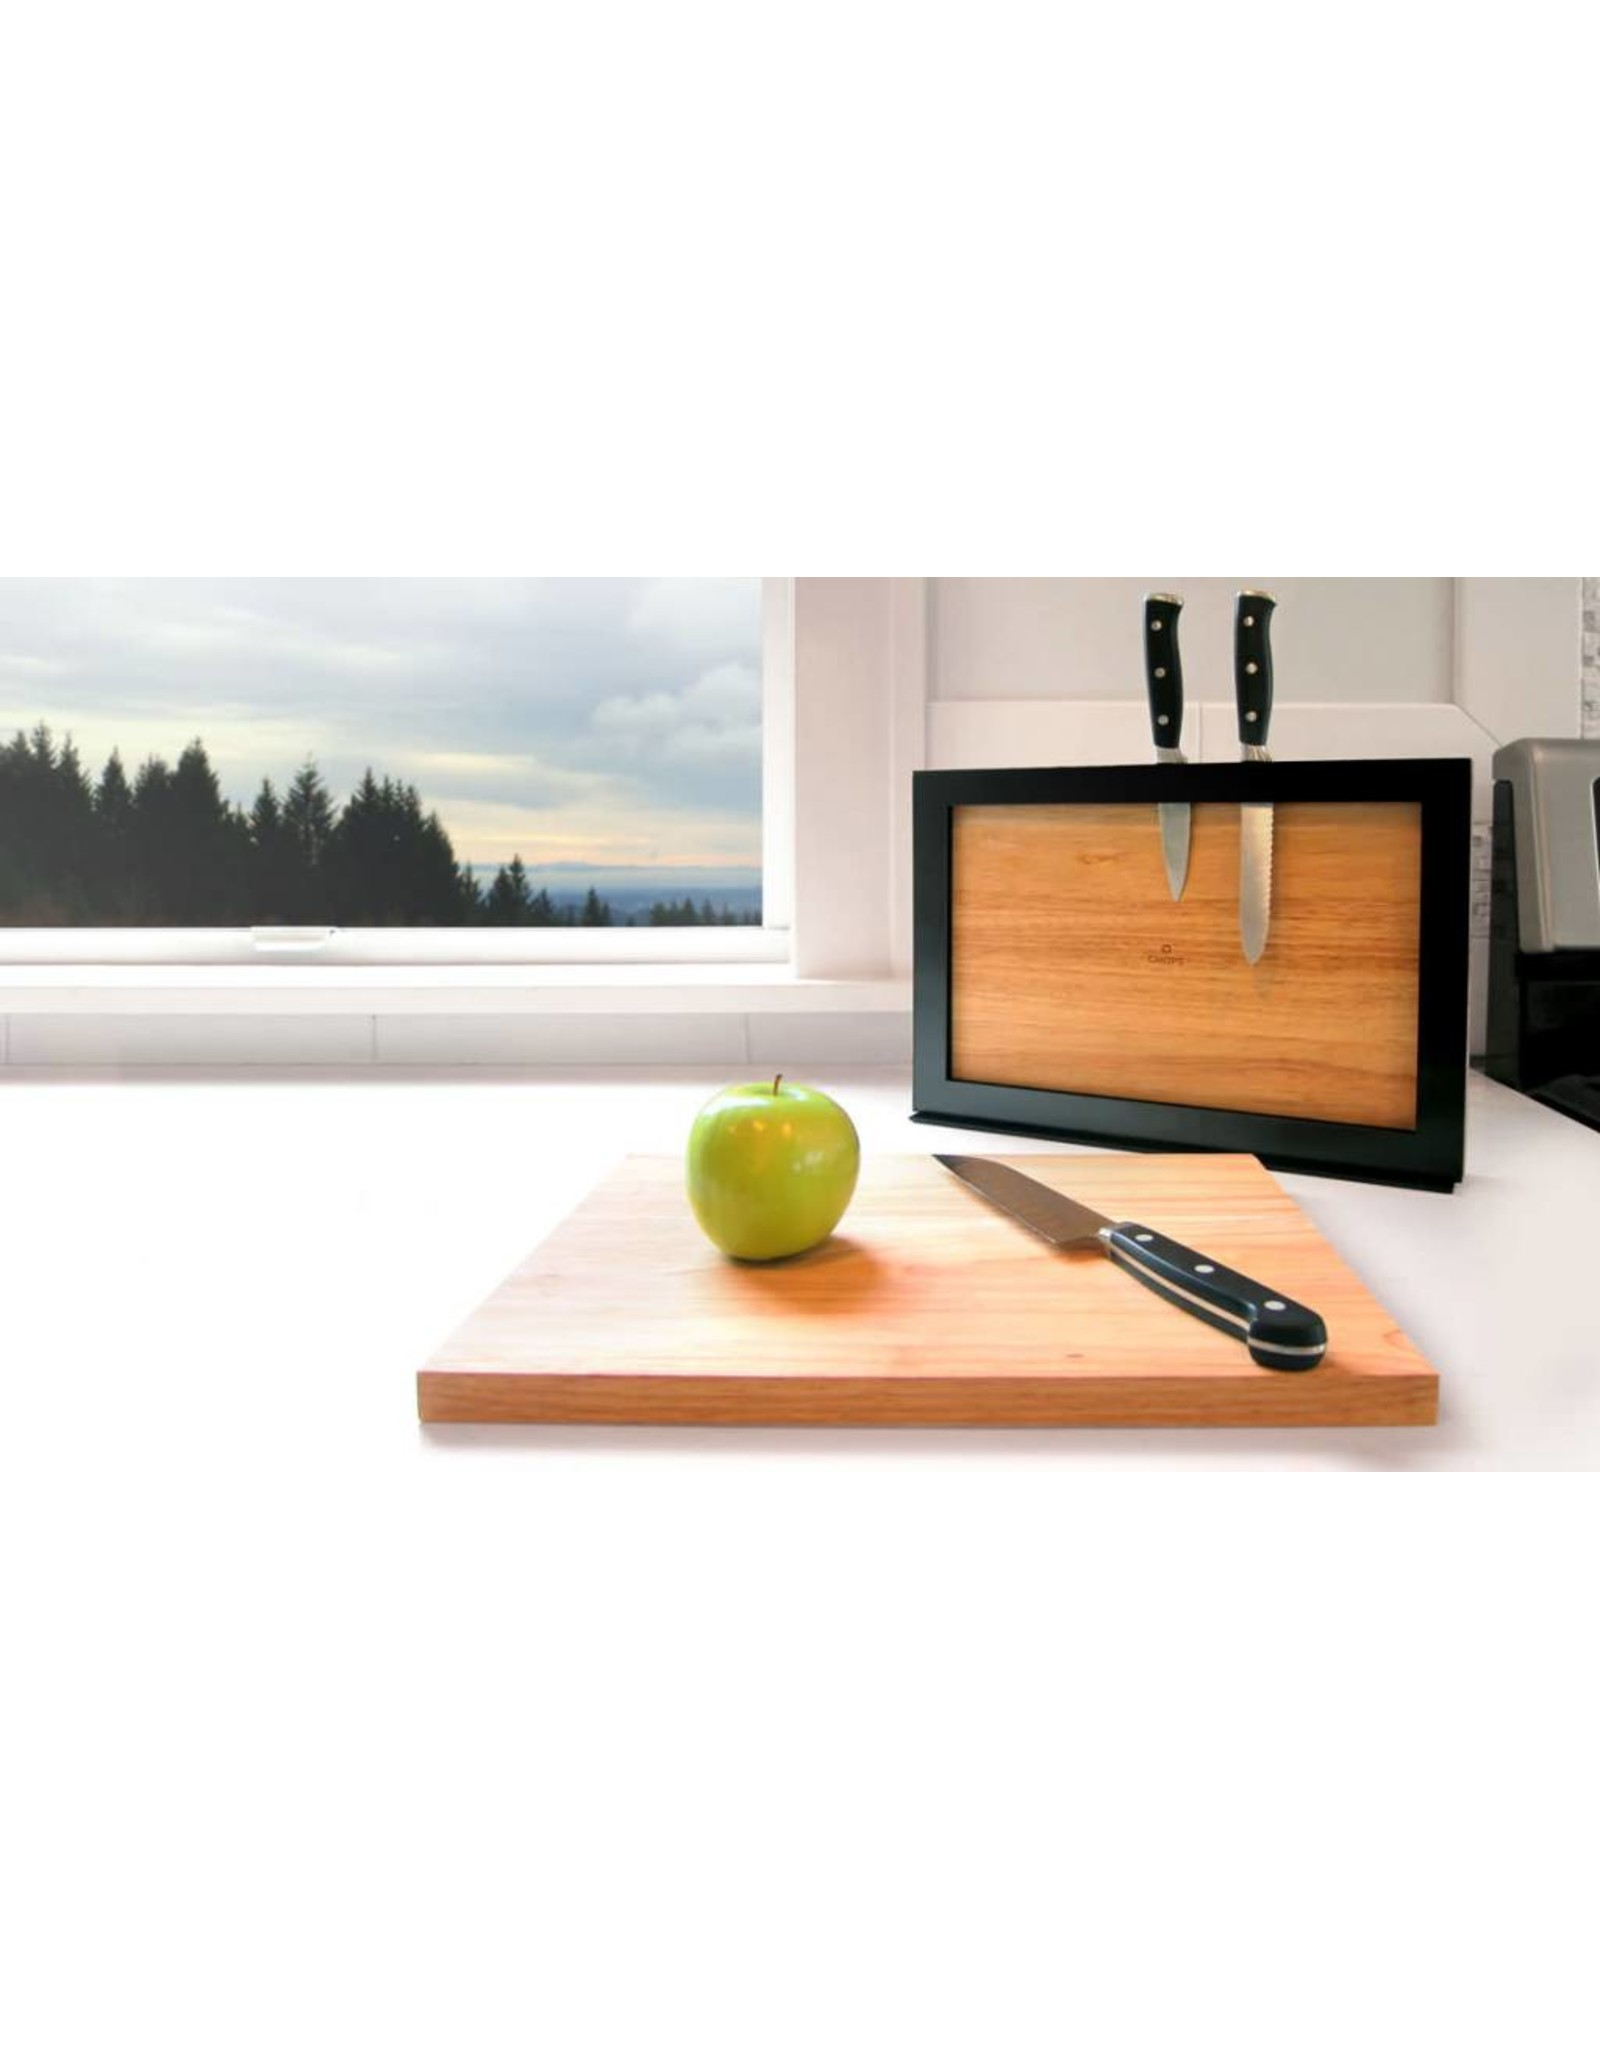 I Love Handles Chops Cutting Board and Knife Holder